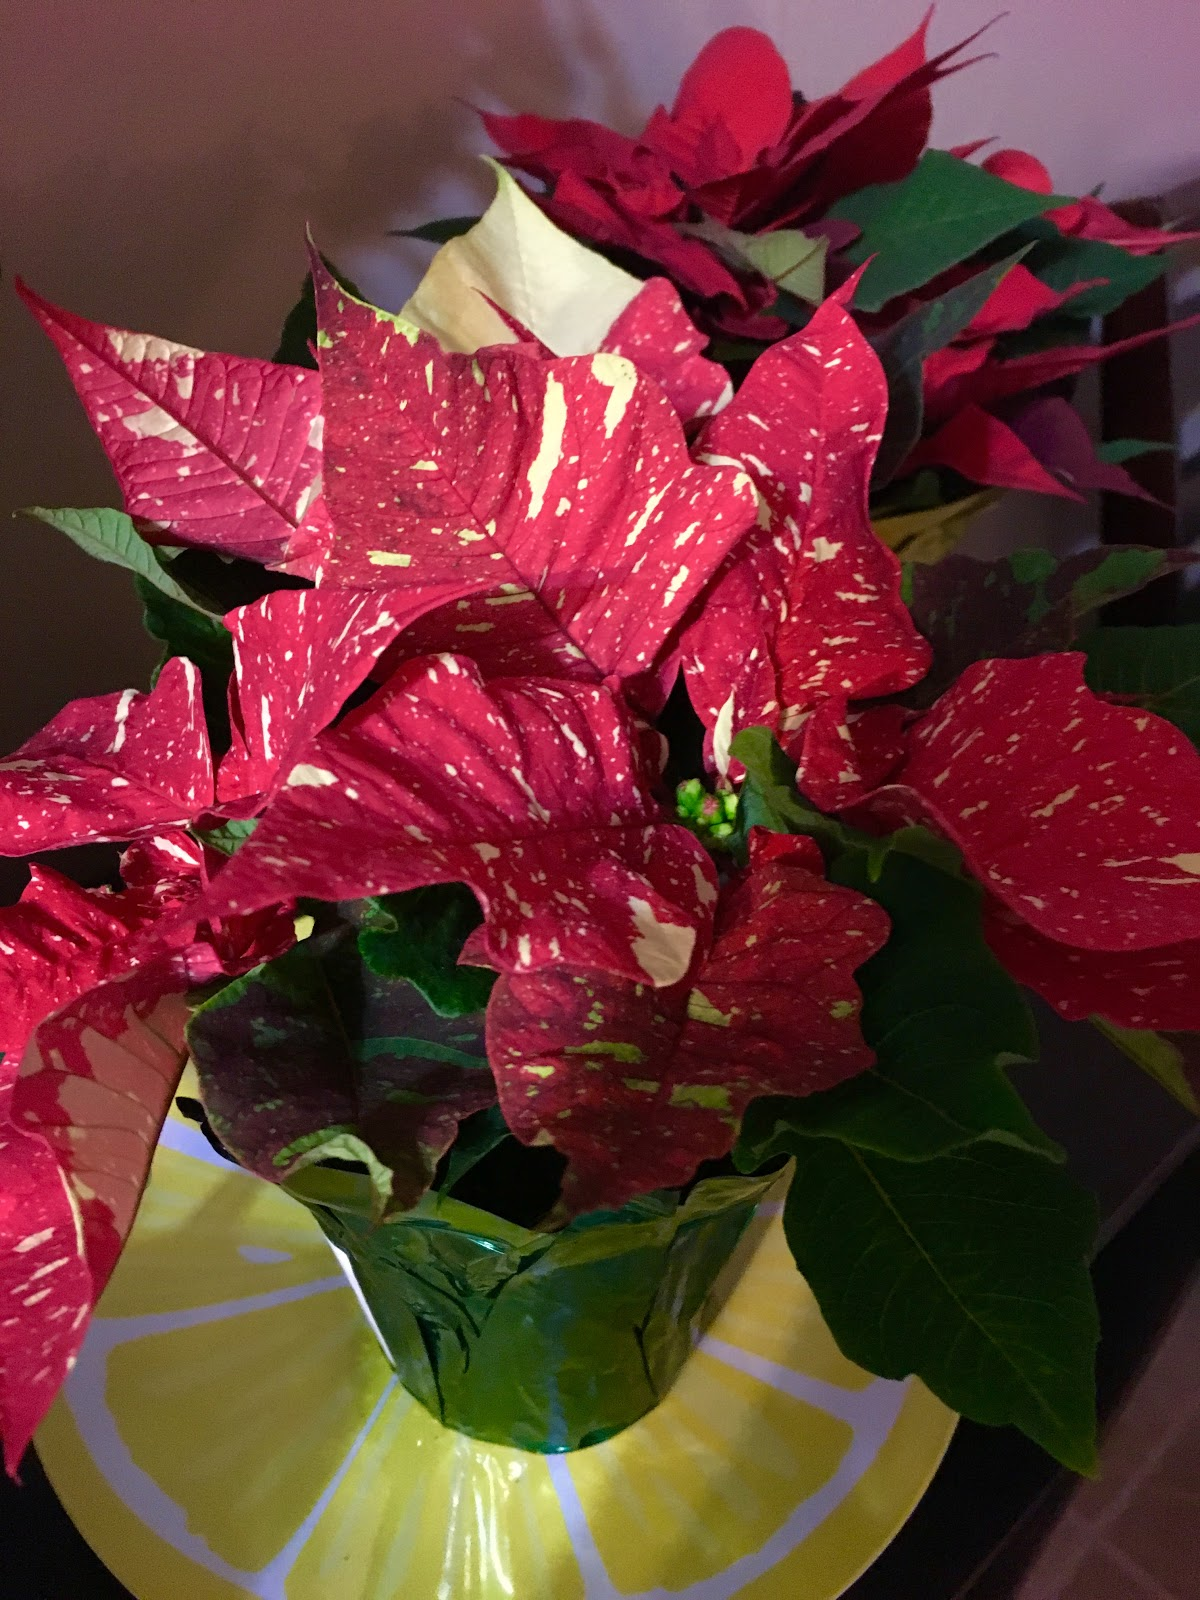 My Apartment Plants: Poinsettia: How to keep it alive past ...